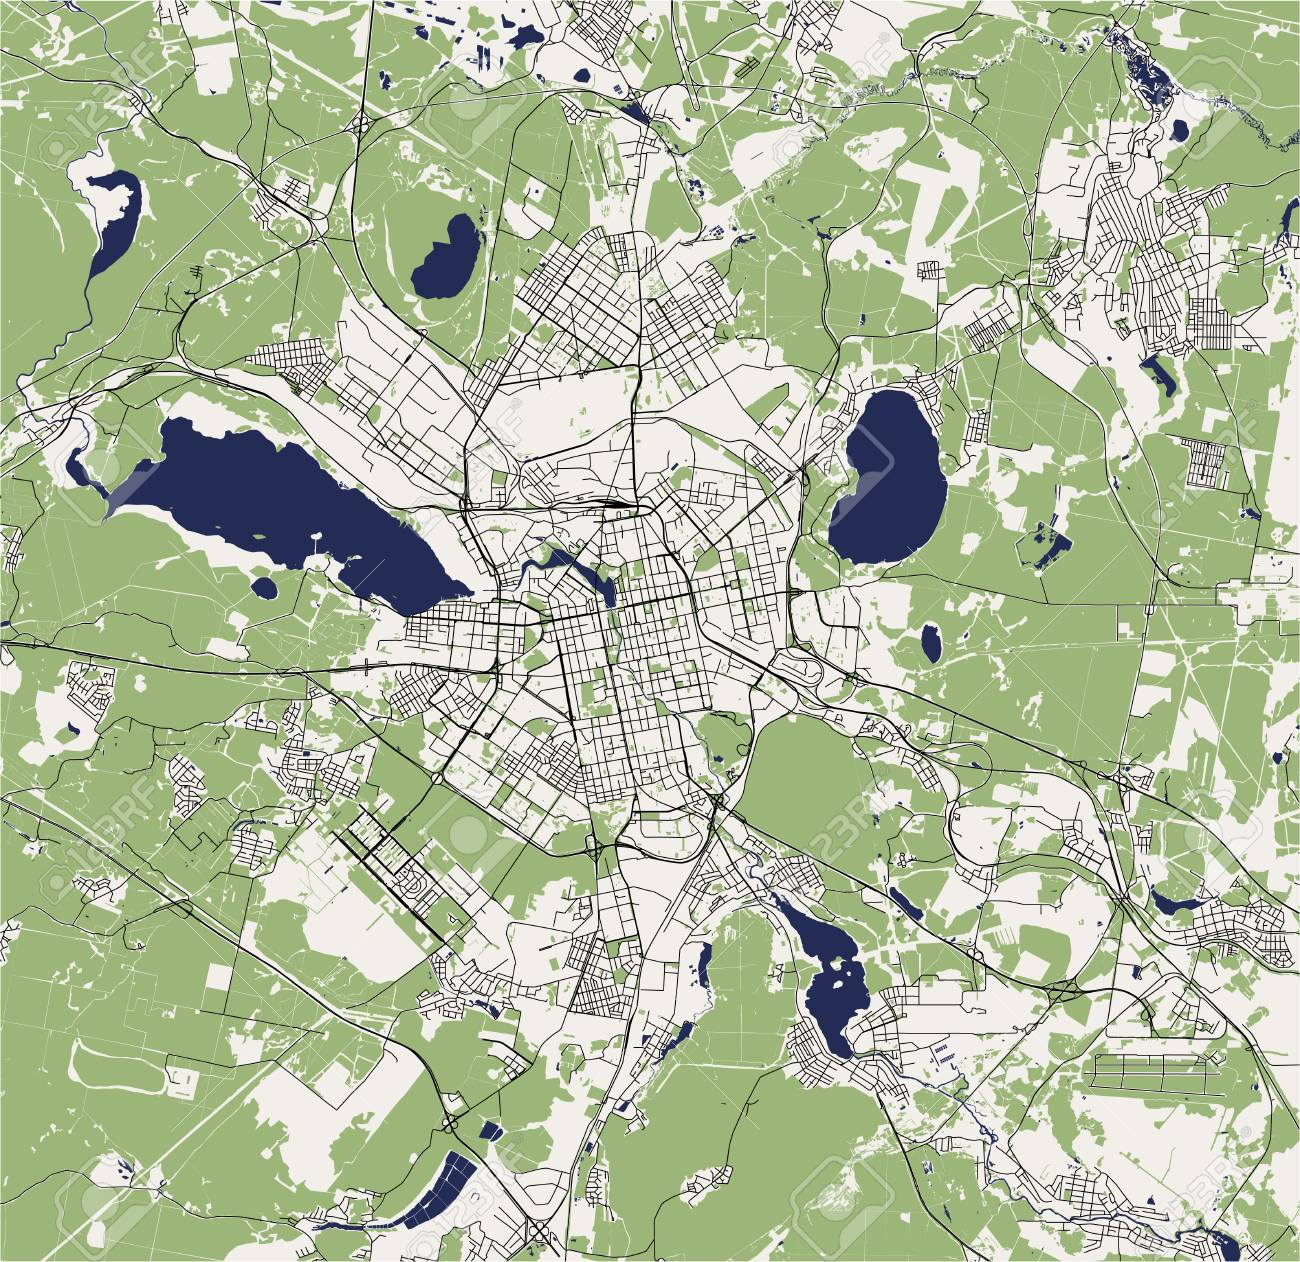 Picture of: Vector Map Of The City Of Yekaterinburg Sverdlovsk Oblast Ural Royalty Free Cliparts Vectors And Stock Illustration Image 125272479